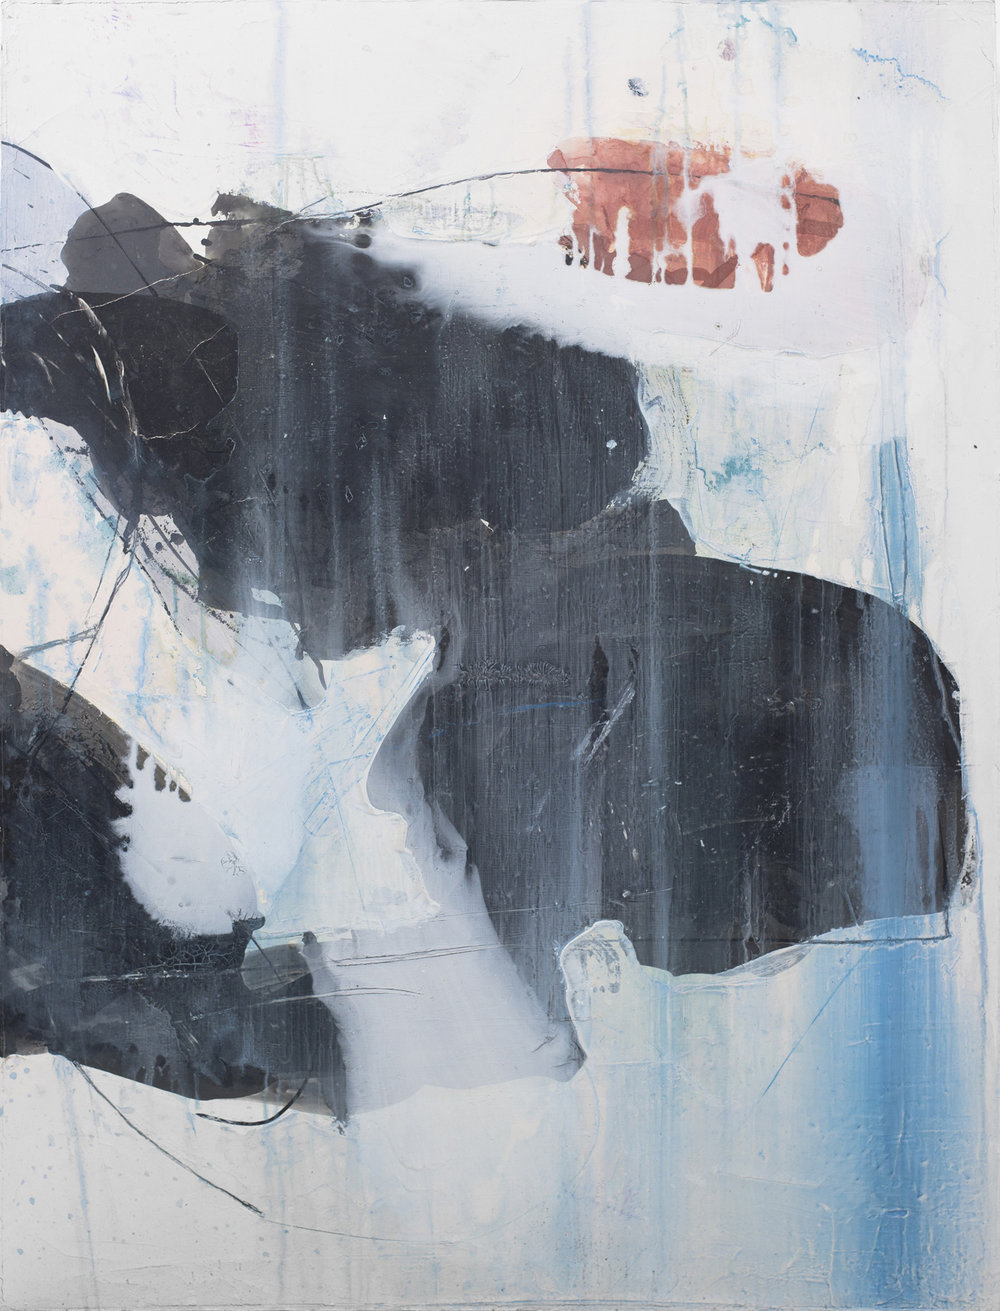 dongze-huo--escape-3-oil-acrylic-gesso-ink-paper-and-ball-pen-on-canvas-40x30-2014_31872690640_o.jpg